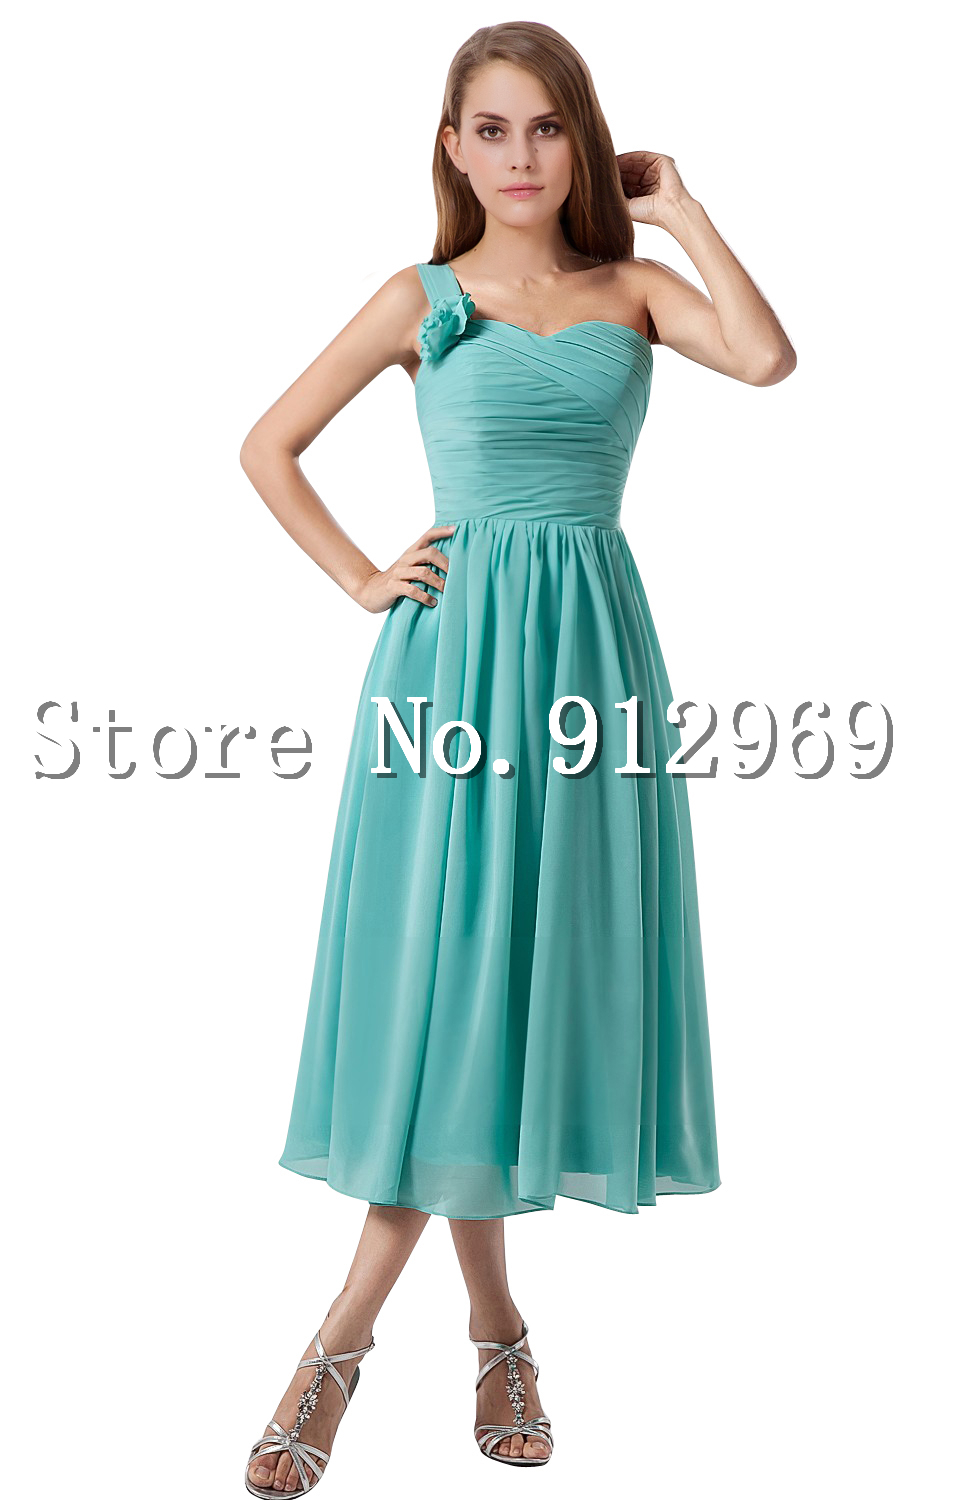 New arrival one shoulder chiffon bridesmaid dresses tea for Amazon wedding guest dress